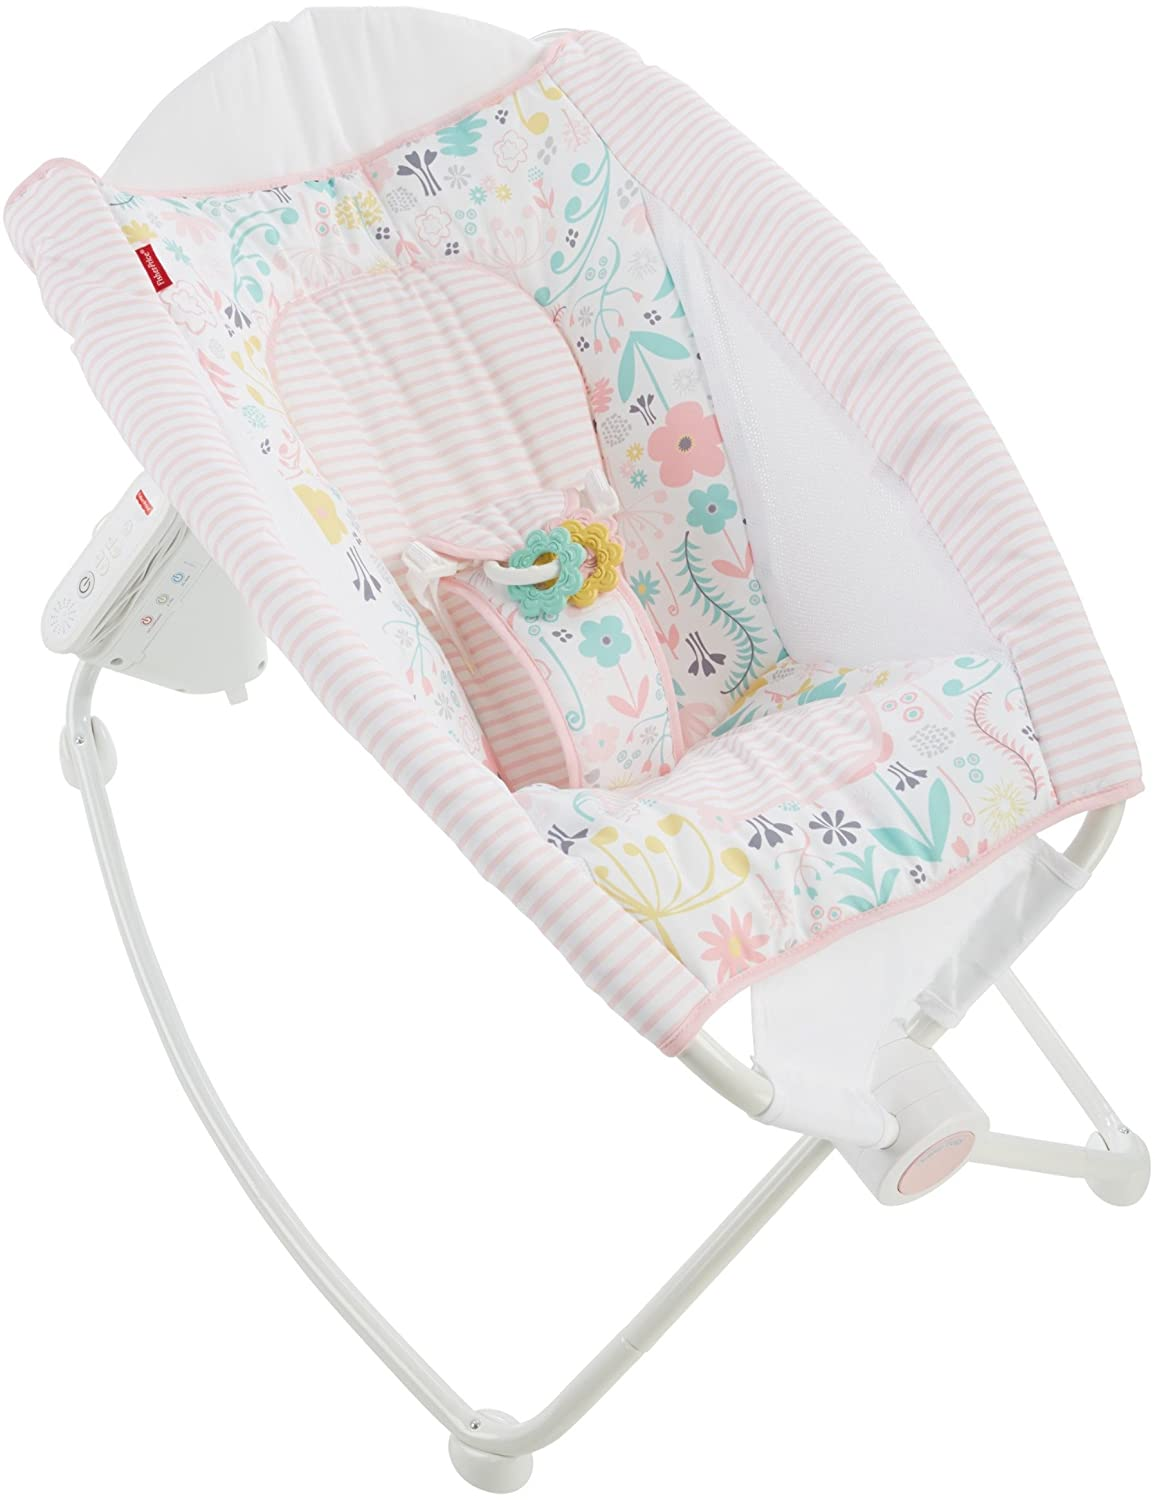 Fisher-Price Auto Rock 'n Play Sleeper, Pink DTG91